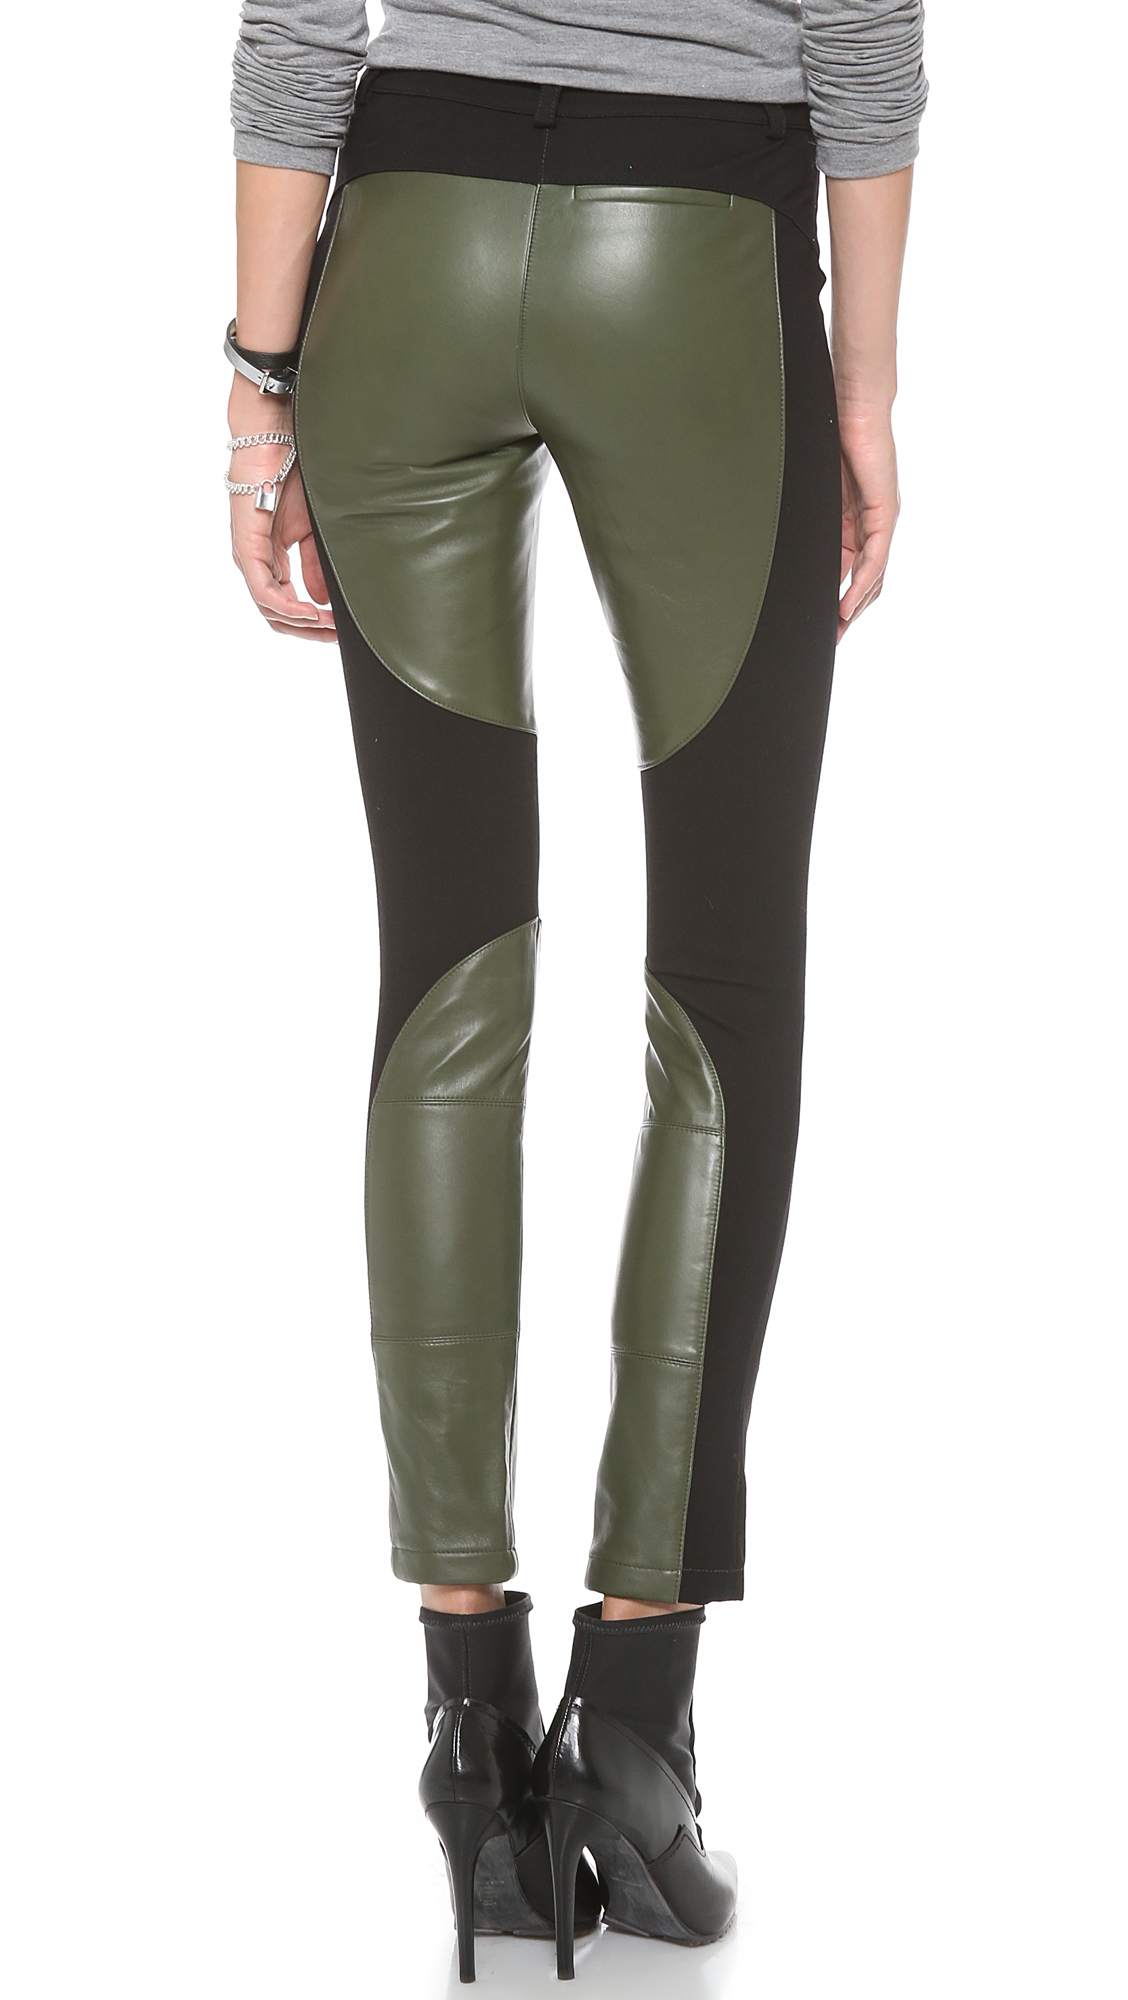 Rebecca minkoff Telescope Leather Pants in Green | Lyst